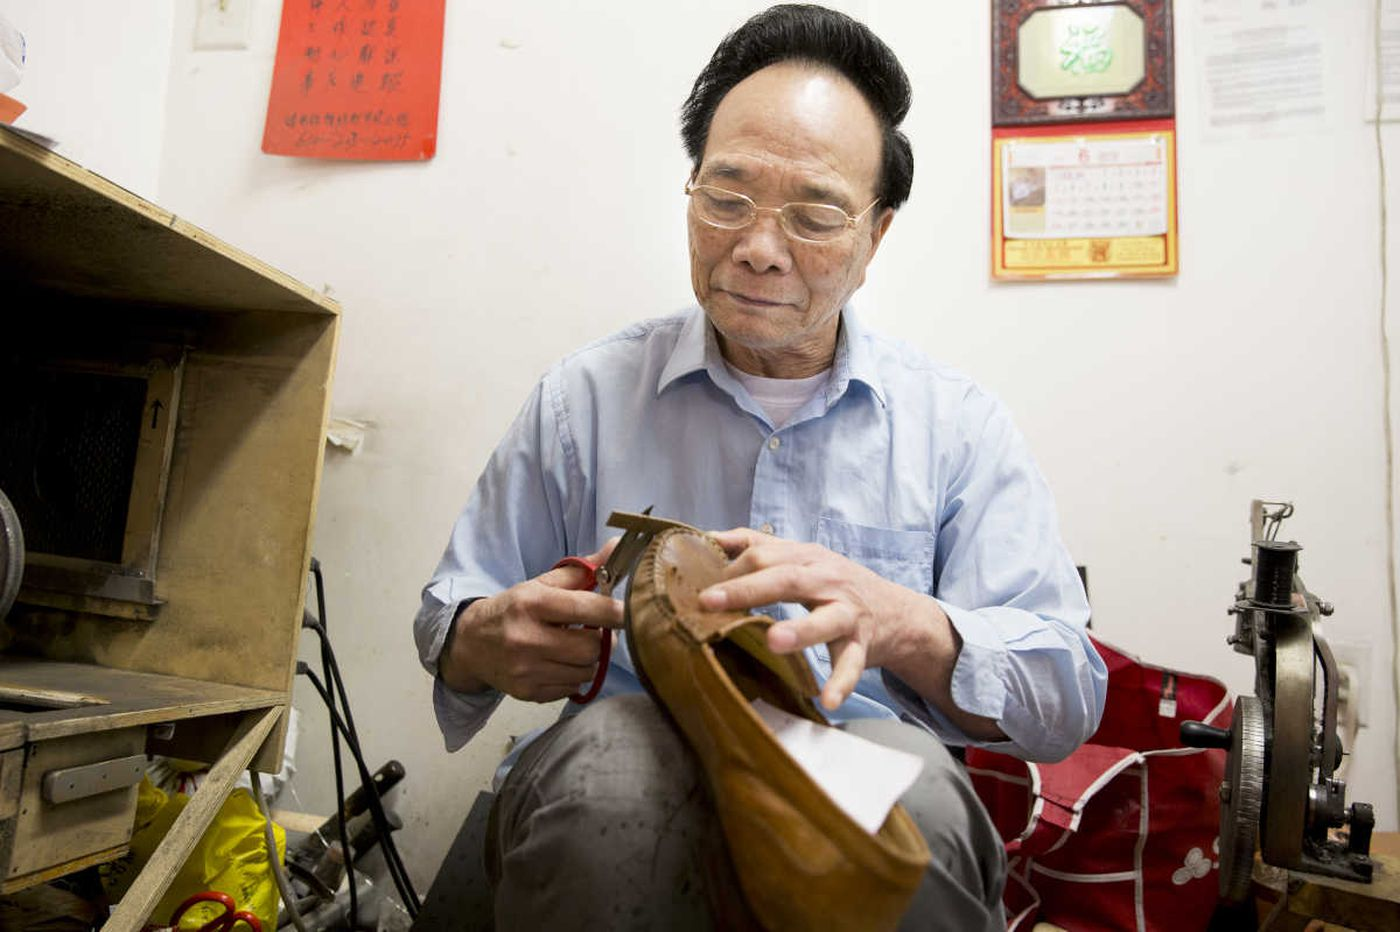 Immigrant spirit at work in Chinatown repair shop